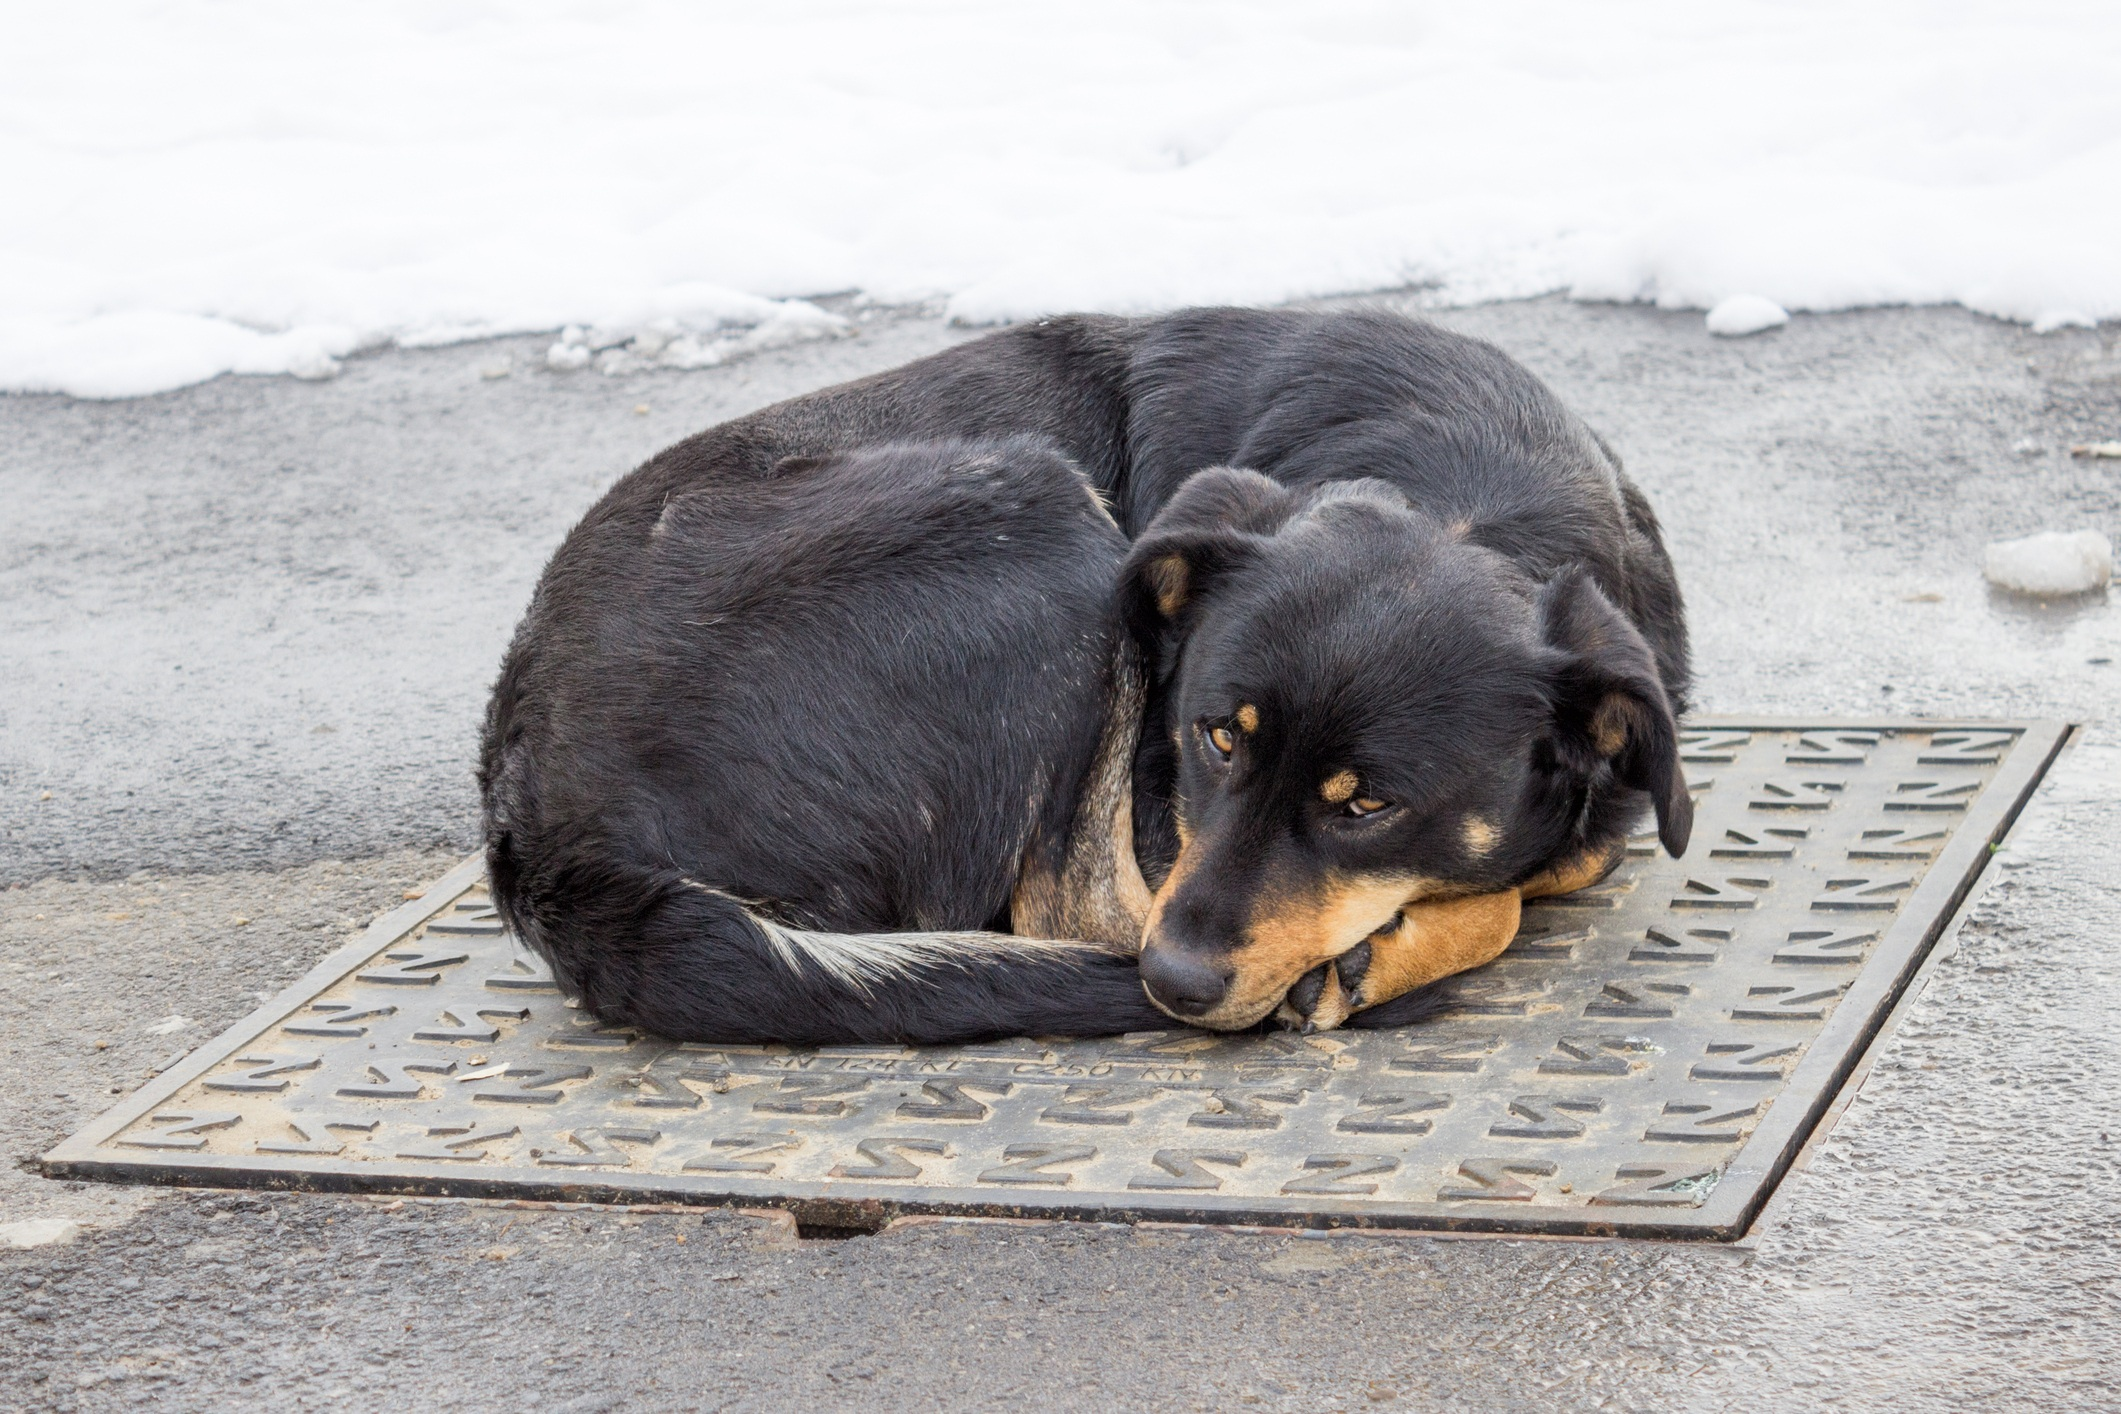 Dog lying on iron man-hole cover in winter time